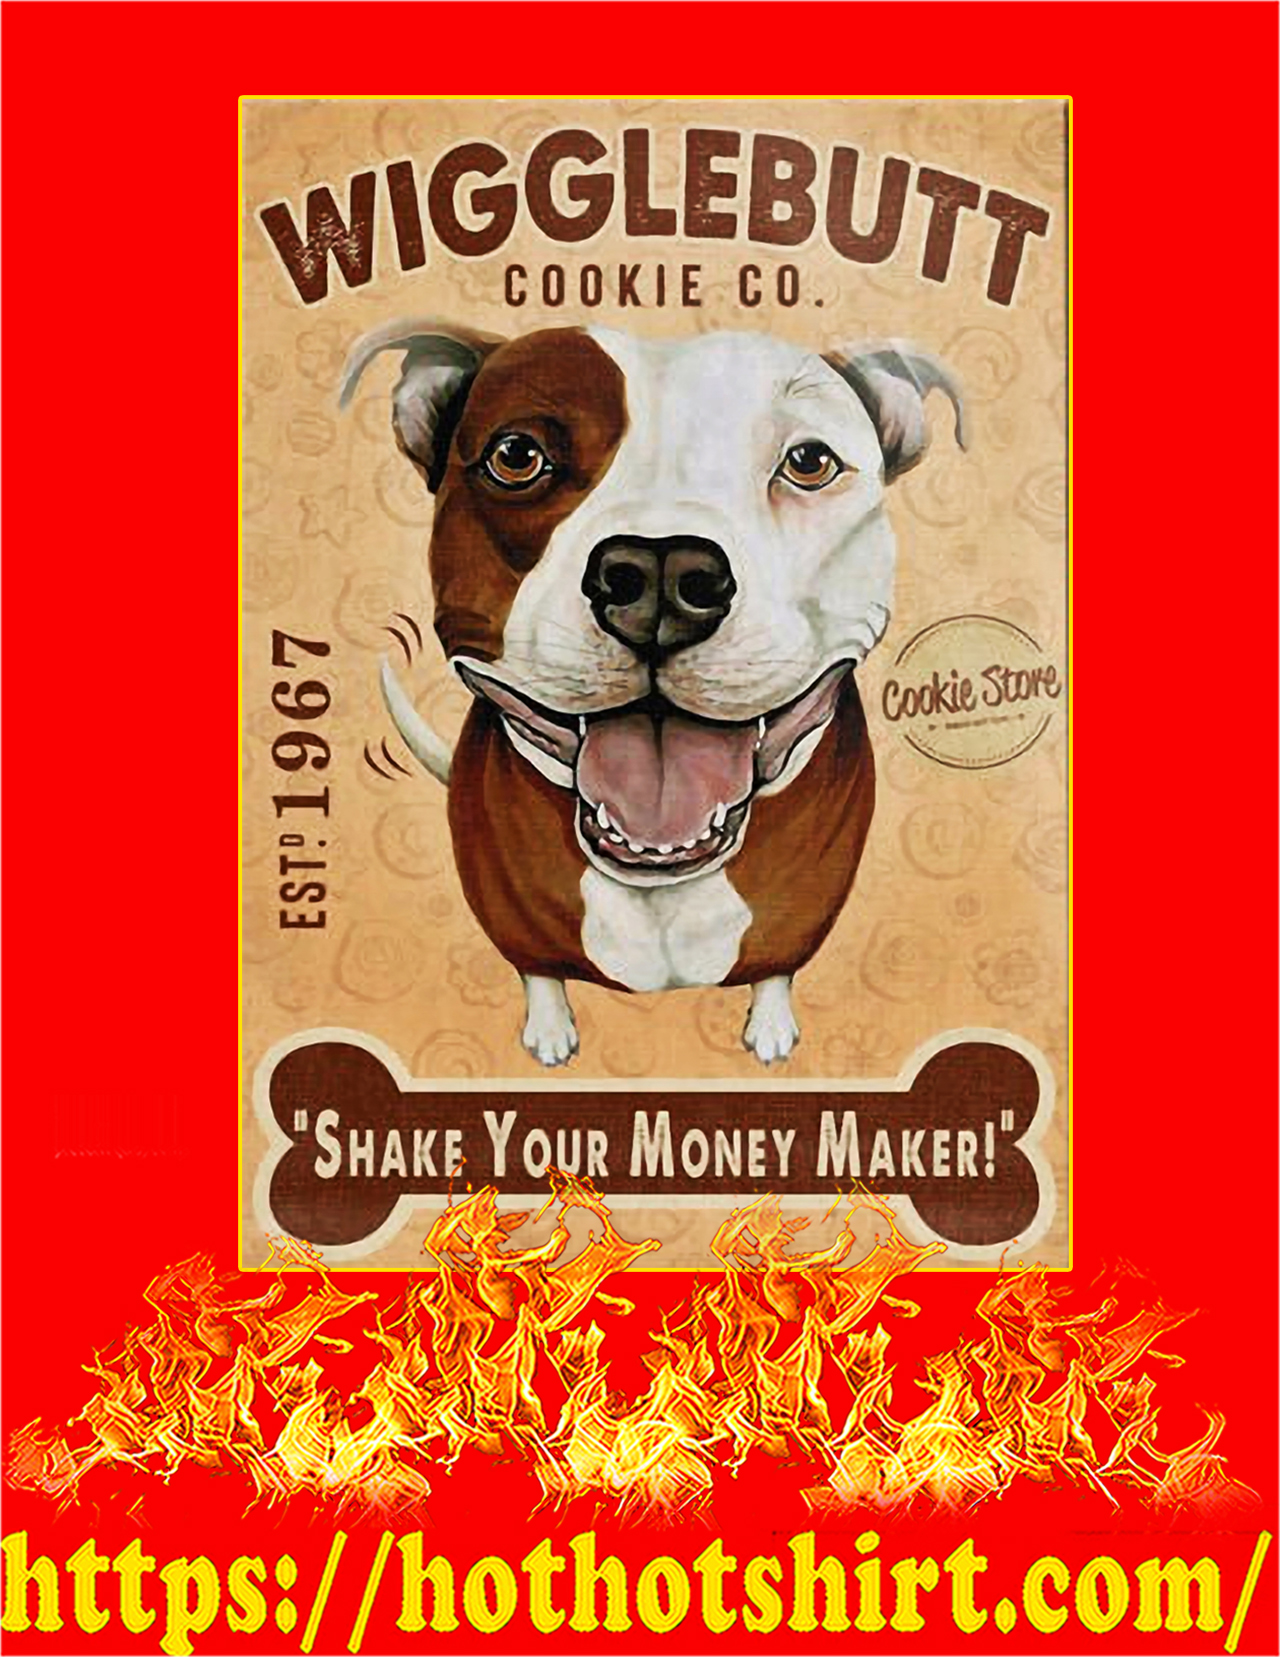 Wigglebutt pit bull dog cookie company poster - A3